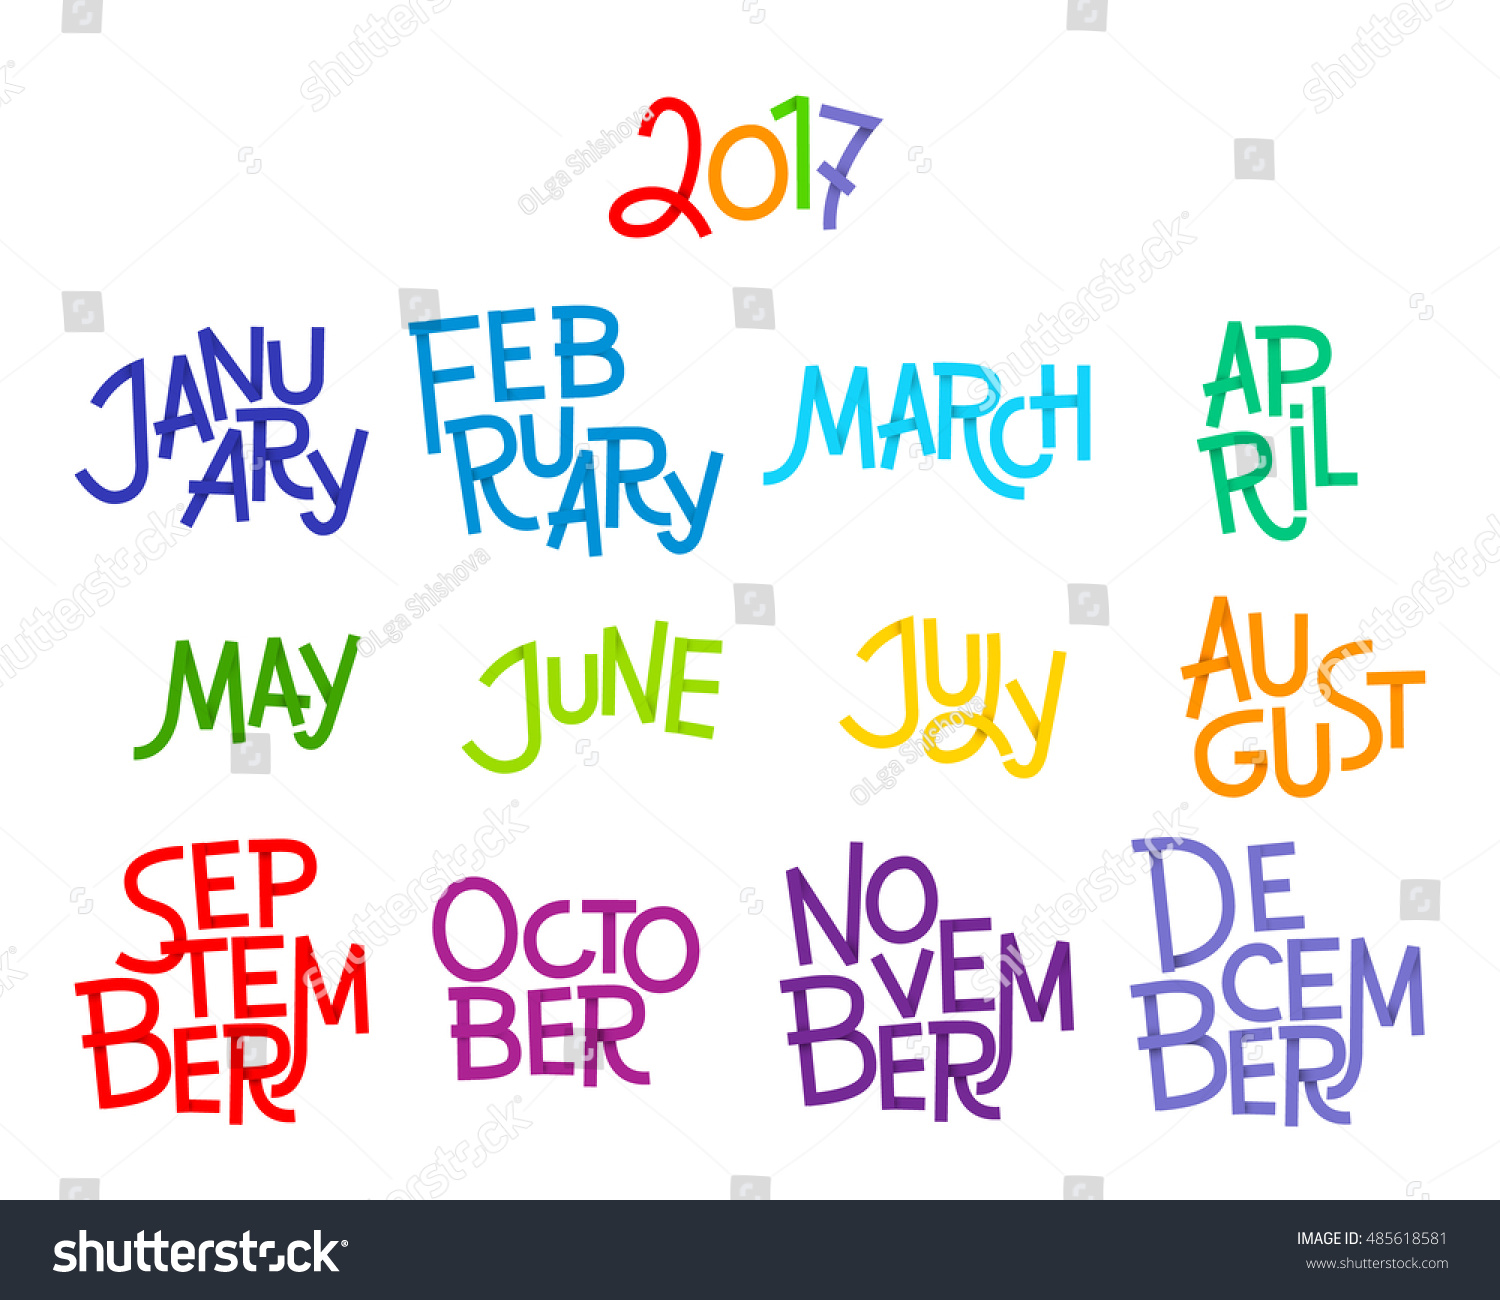 Lettering Months Of The Year December January February March April May June July August September October November 2017